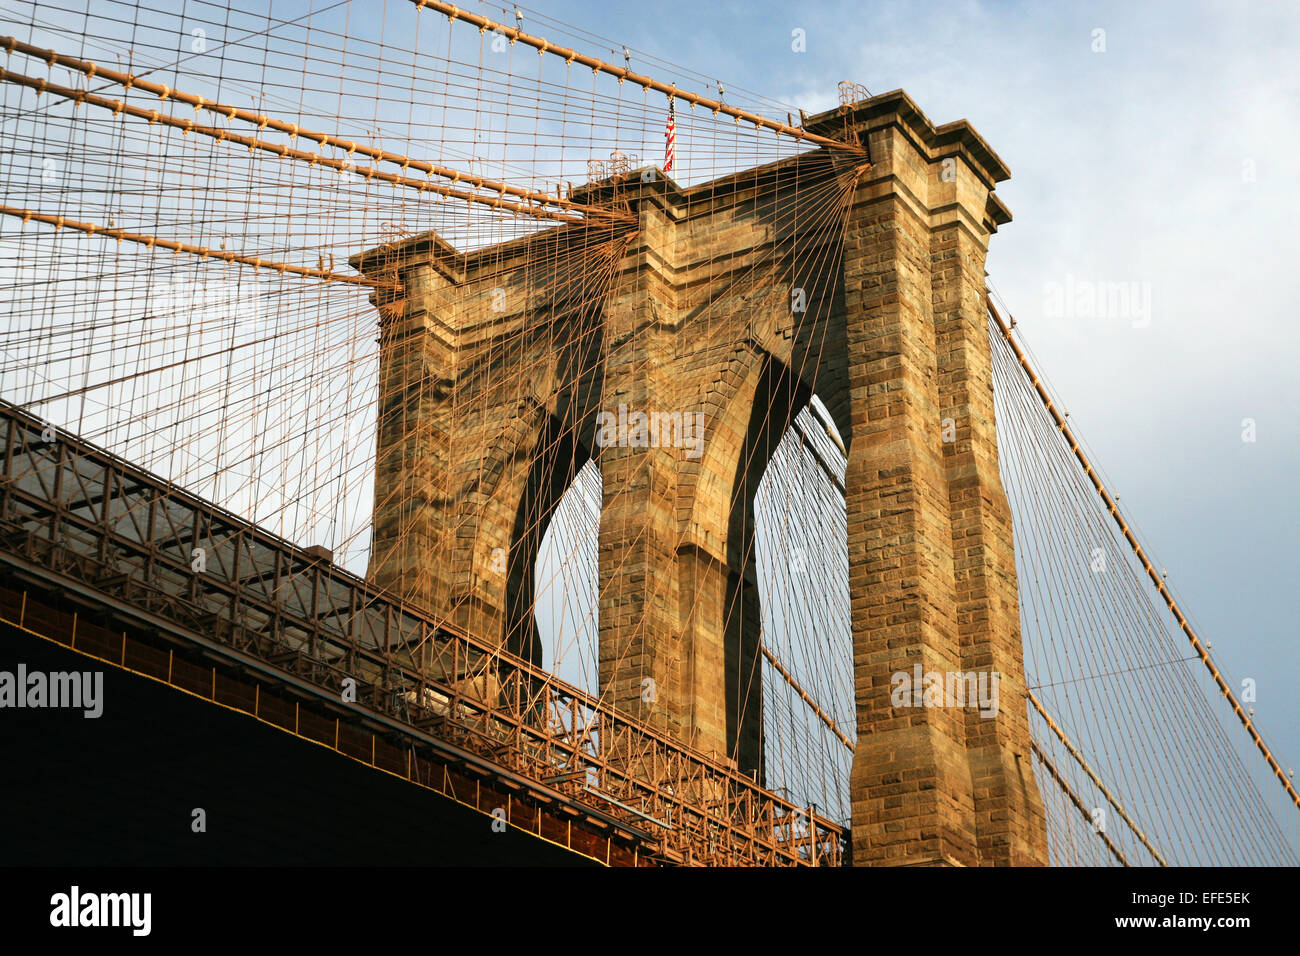 New York Brooklyn Bridge - Stock Image